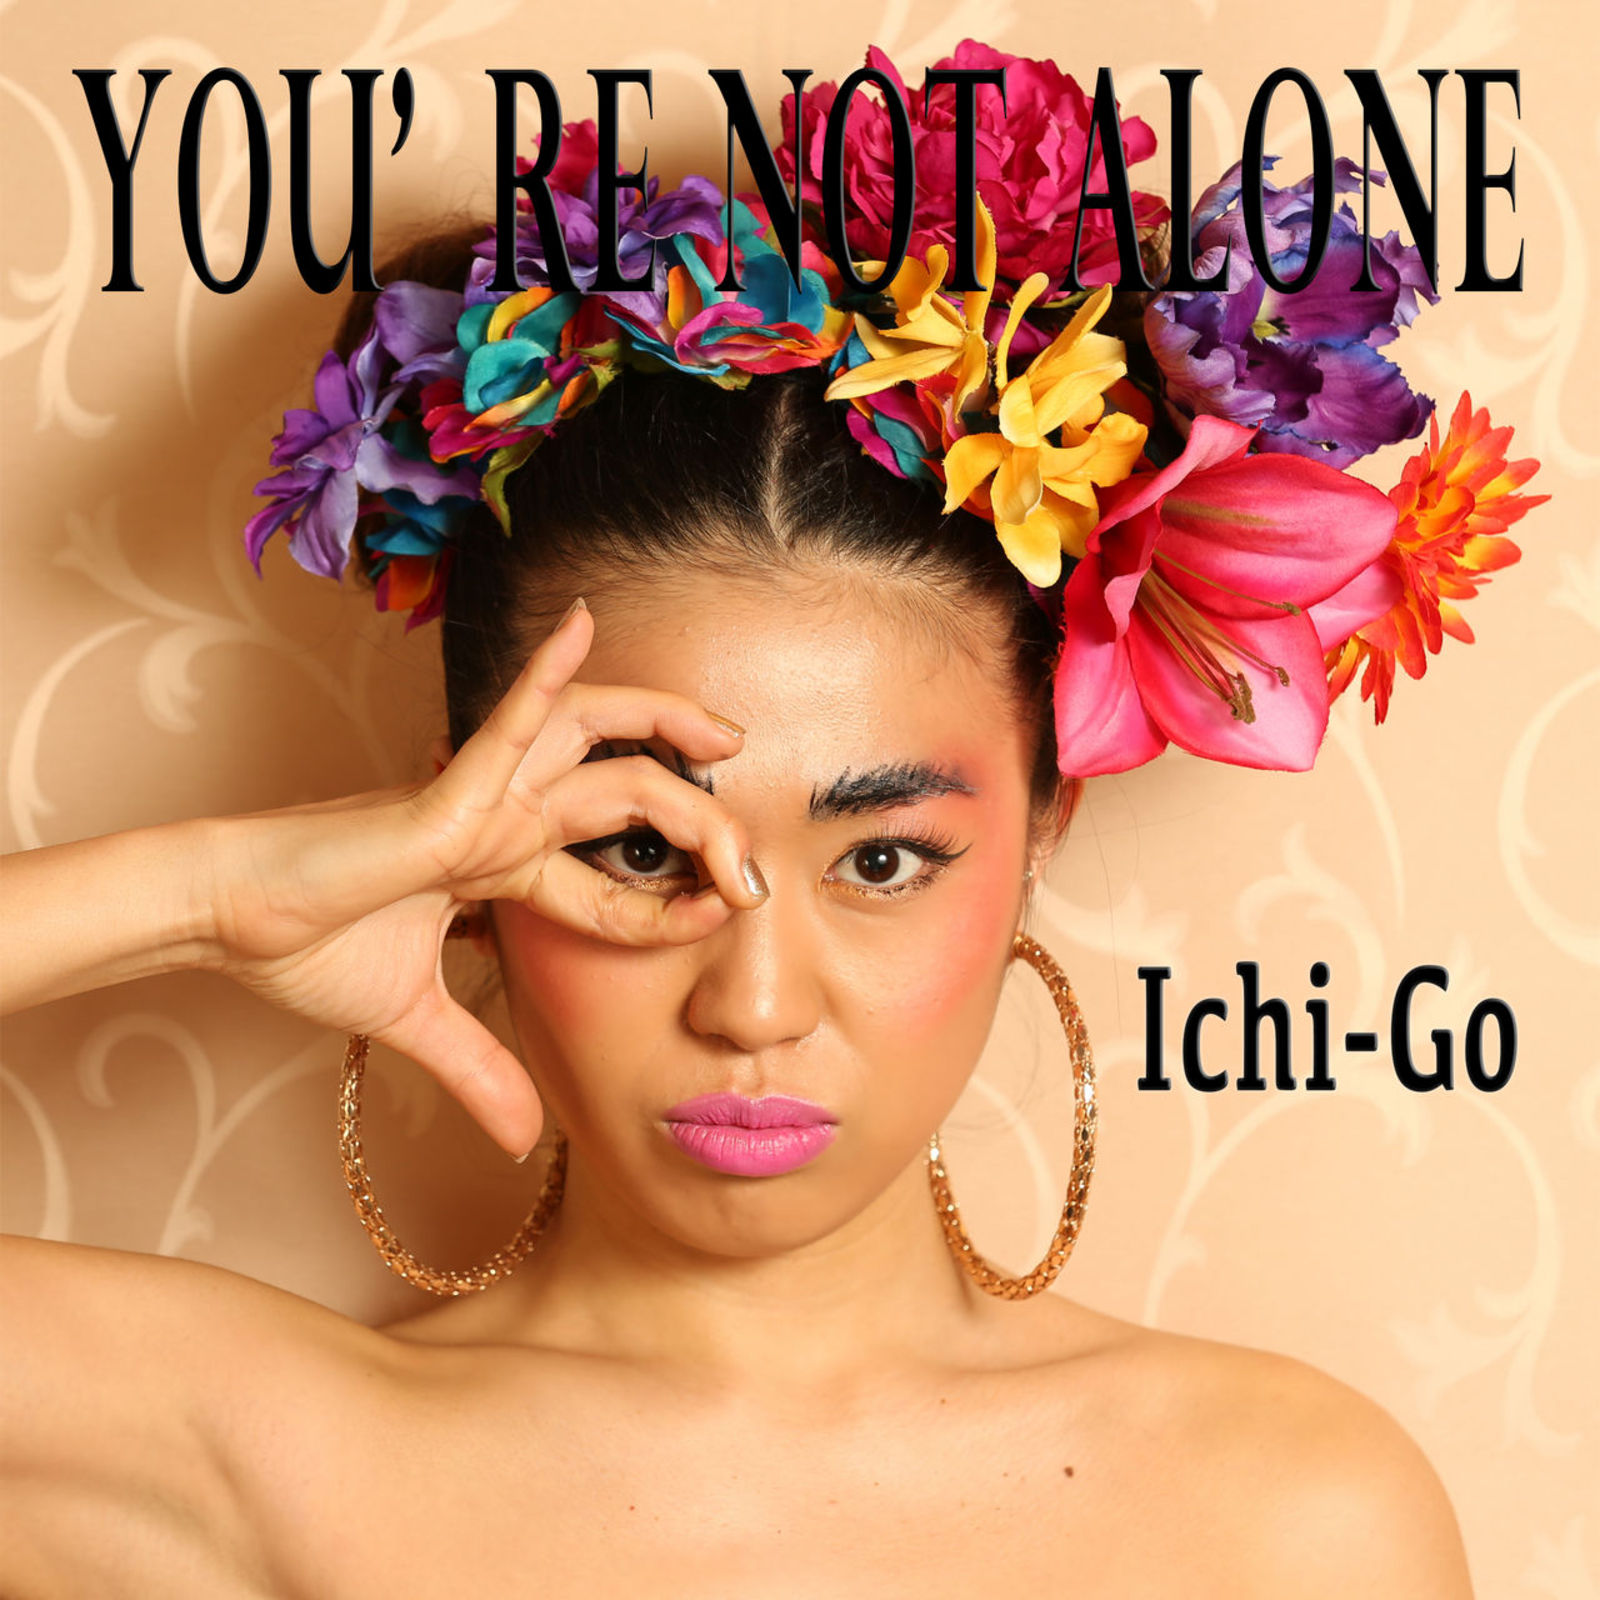 Ichi-Go / You're Not Alone - Ring tone / 2017.04.28